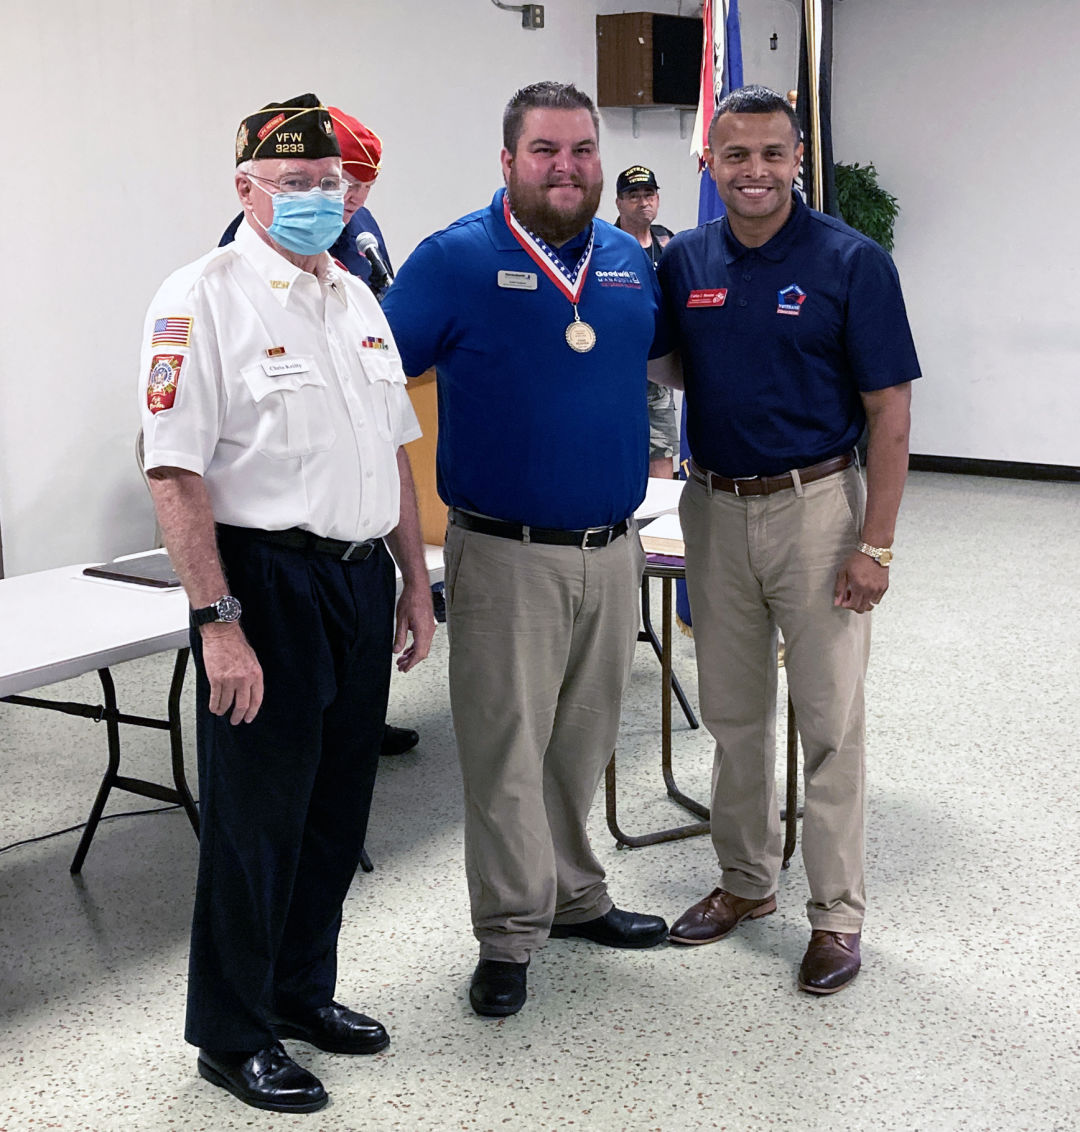 John H. McLain Veteran of the Year Award-winner Todd Hughes (center) with Christopher Kielty (left) and Carlos Moreira of the Sarasota County Veterans Commission